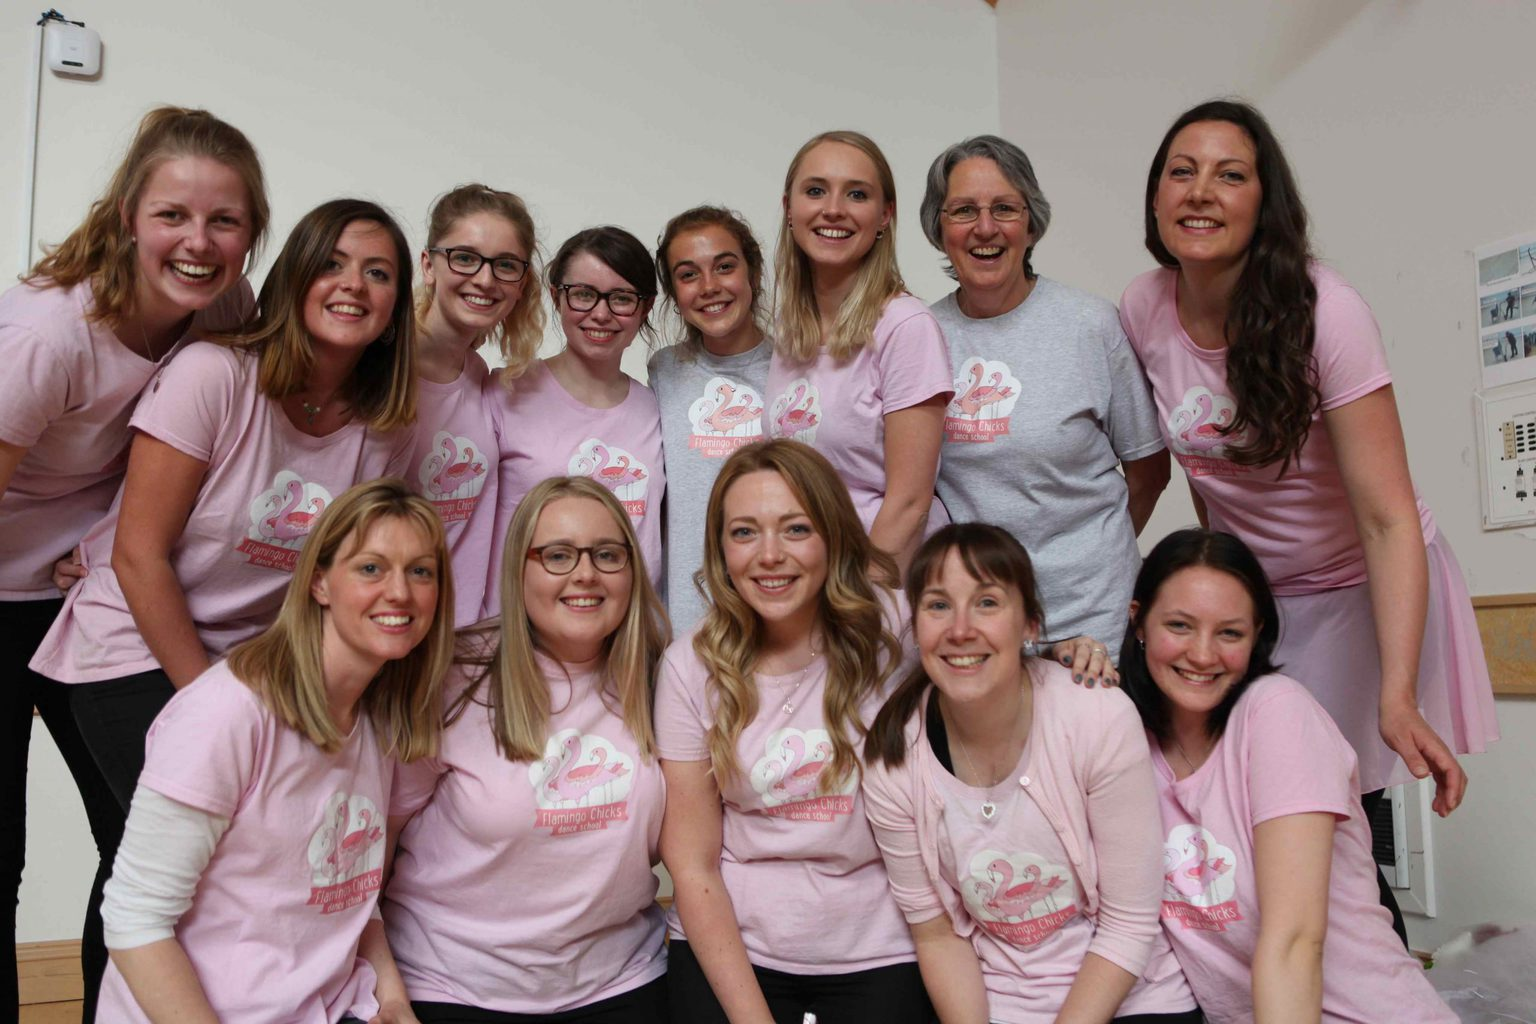 Flamingo Chicks' amazing volunteer team